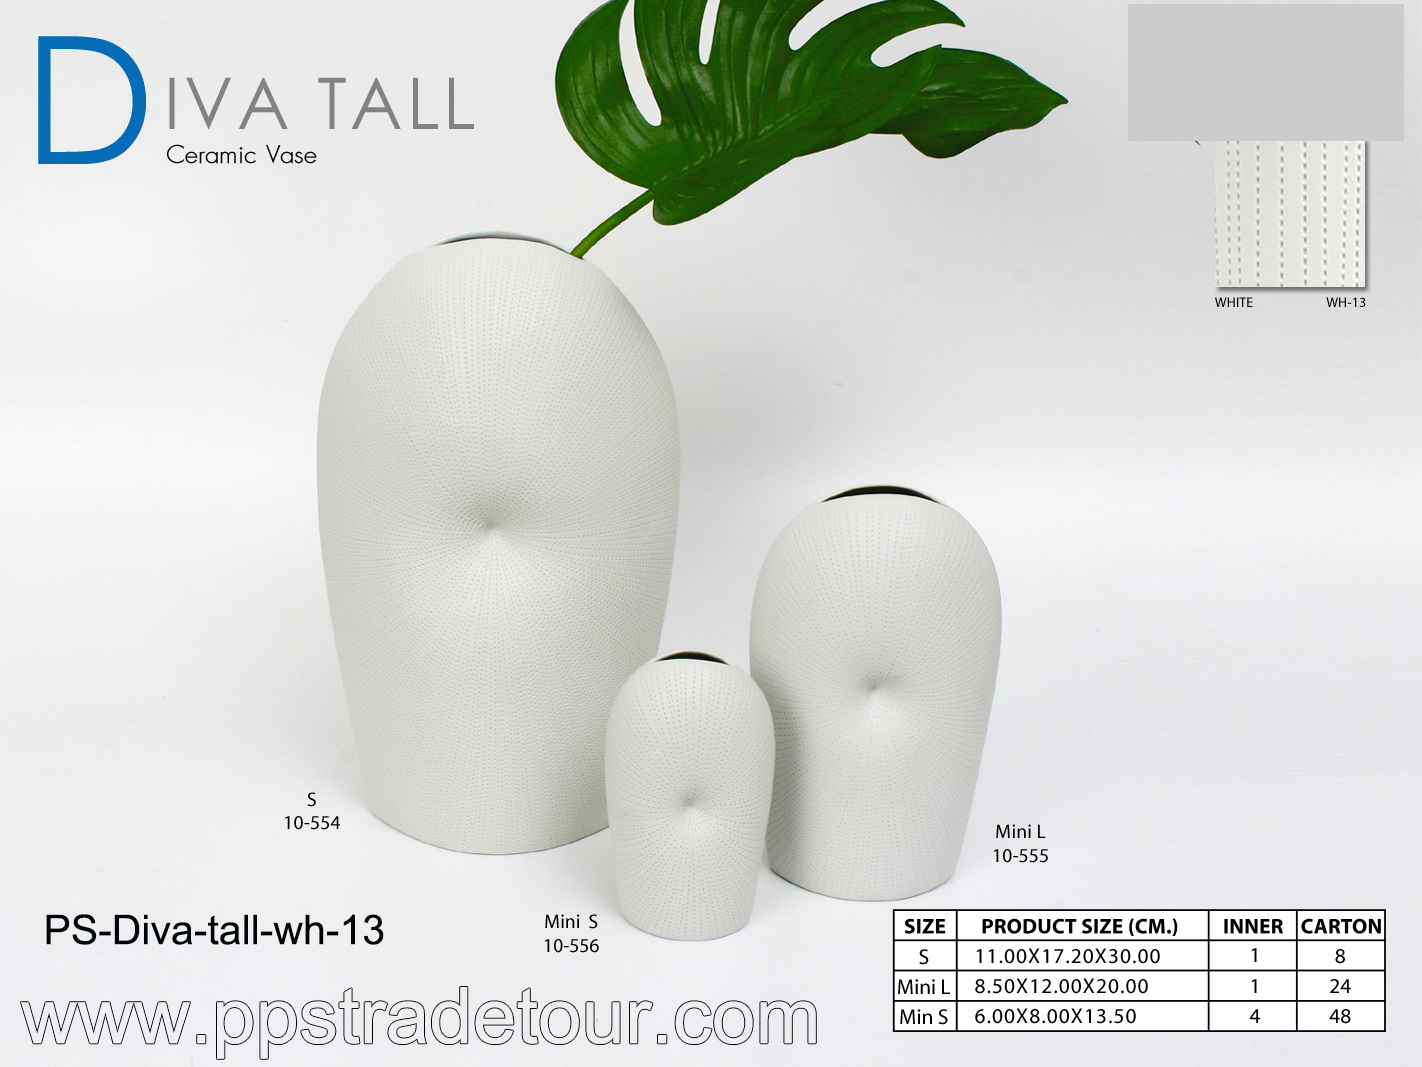 PSCV-Diva-Tall_wh-13